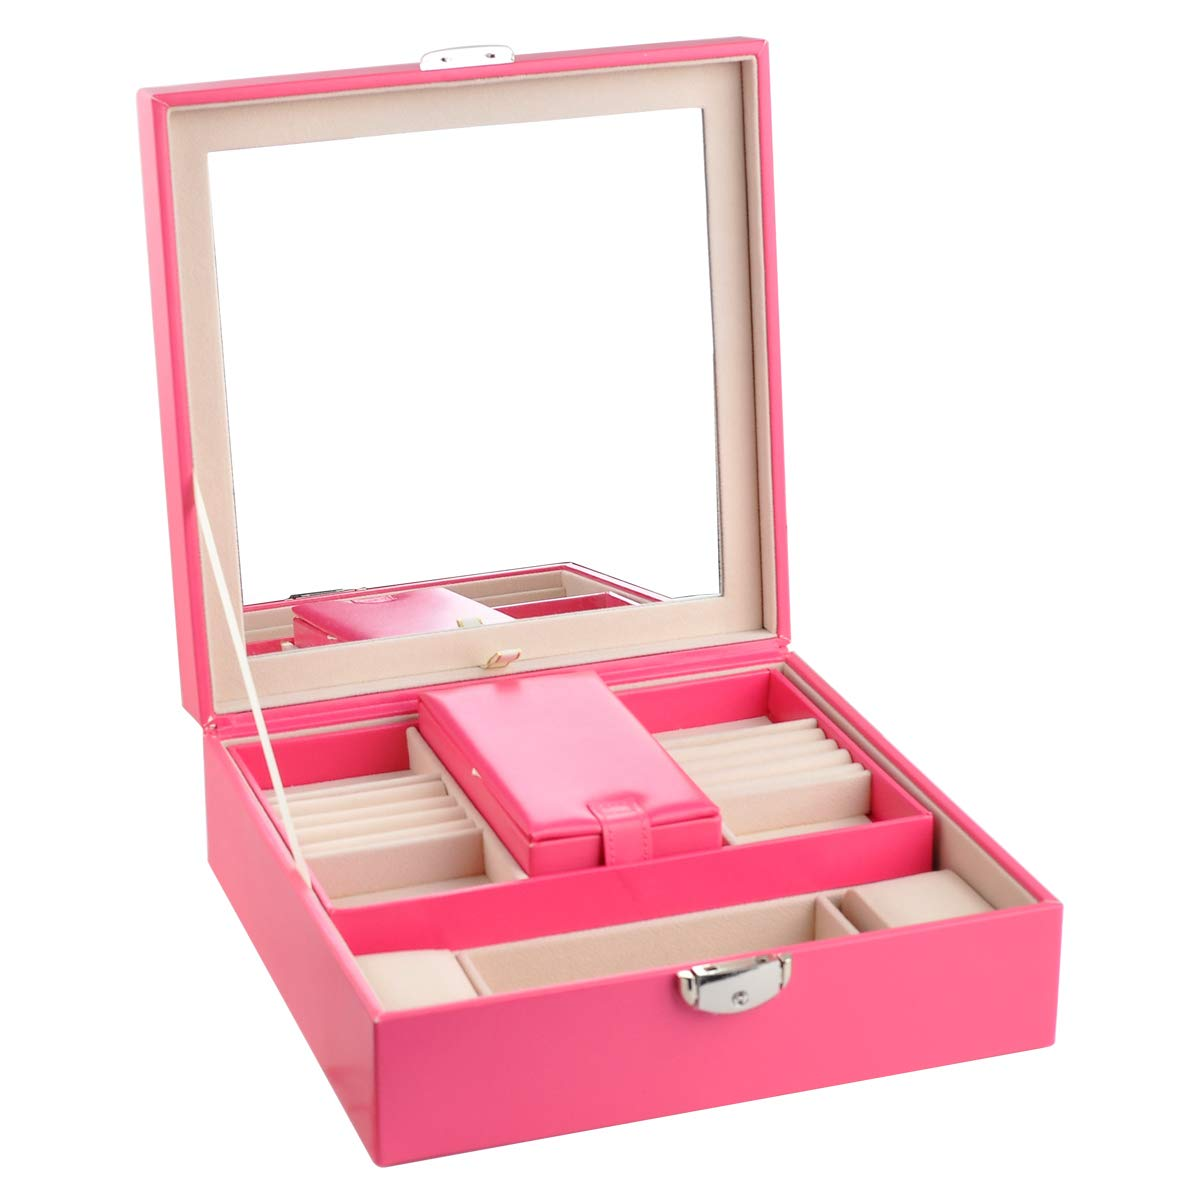 Rose Red NirongLavie Womens Jewelry Box Leather Square-Shaped Lockable Jewelry Storage Organizer Case with Mirror /& A Mini Travel Jewellery Case